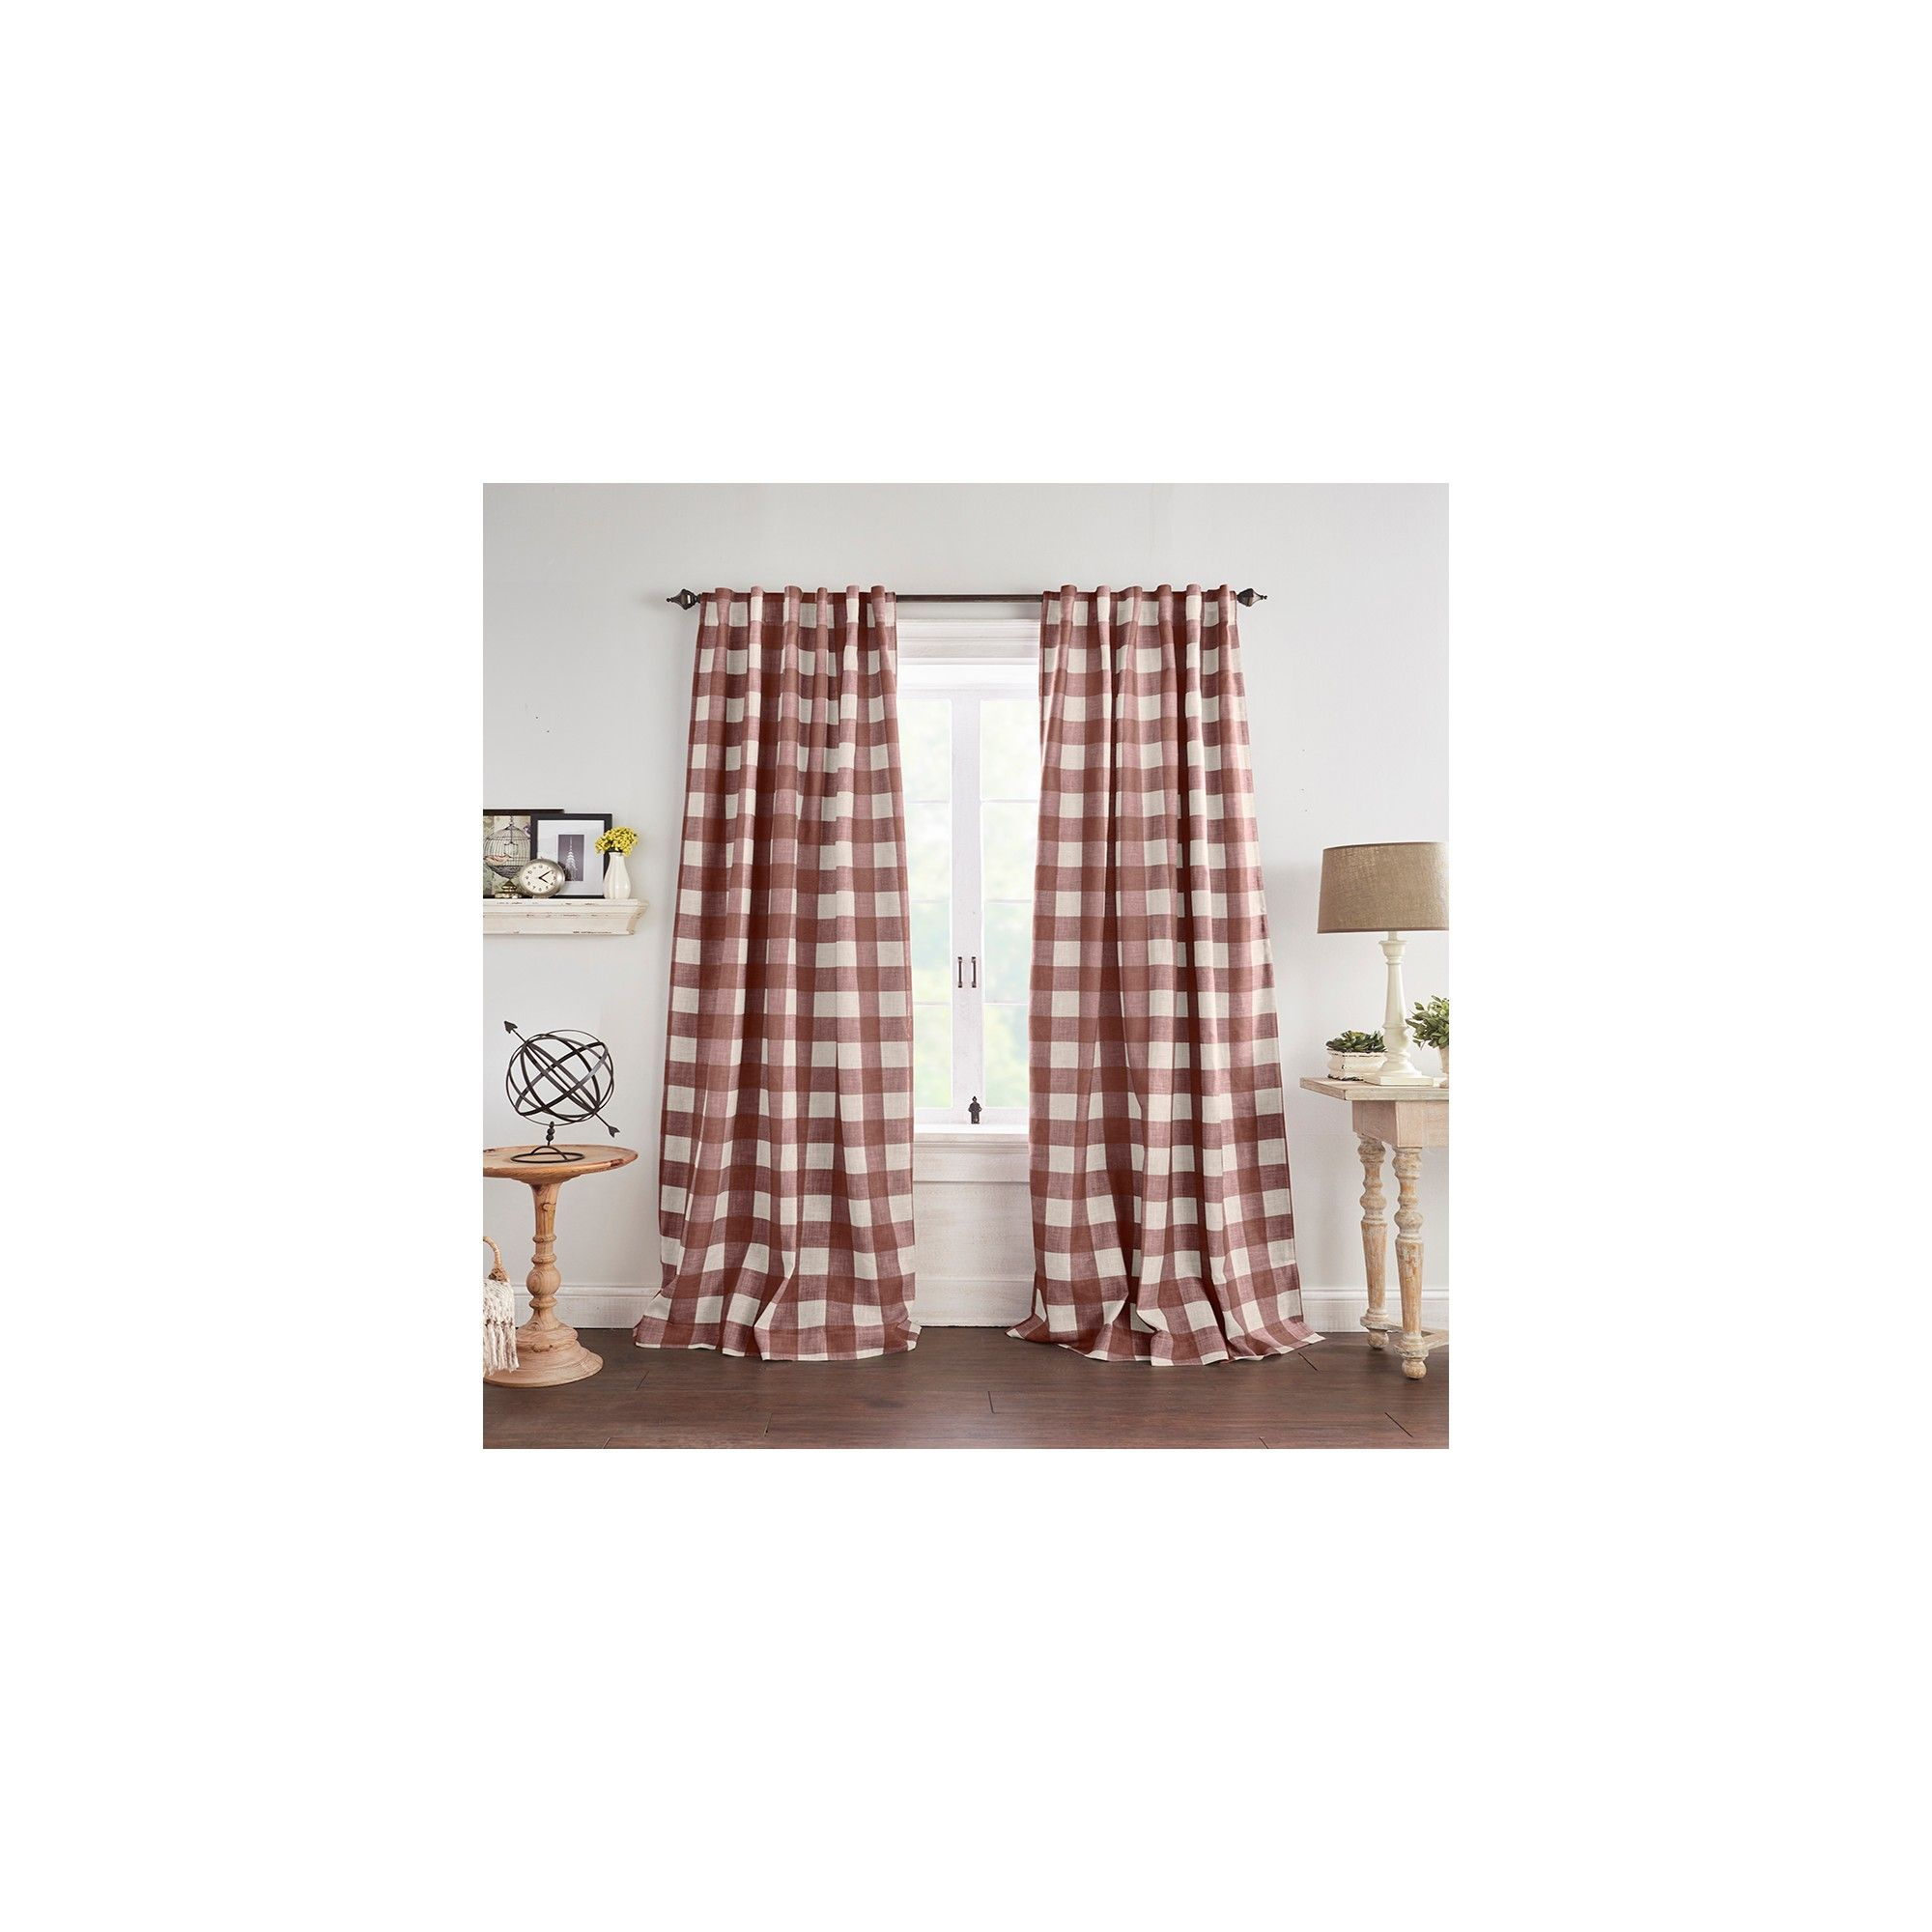 "Grainger Buffalo Check Blackout Window Curtain Panel – 52"" X Inside Grainger Buffalo Check Blackout Window Curtains (View 4 of 20)"